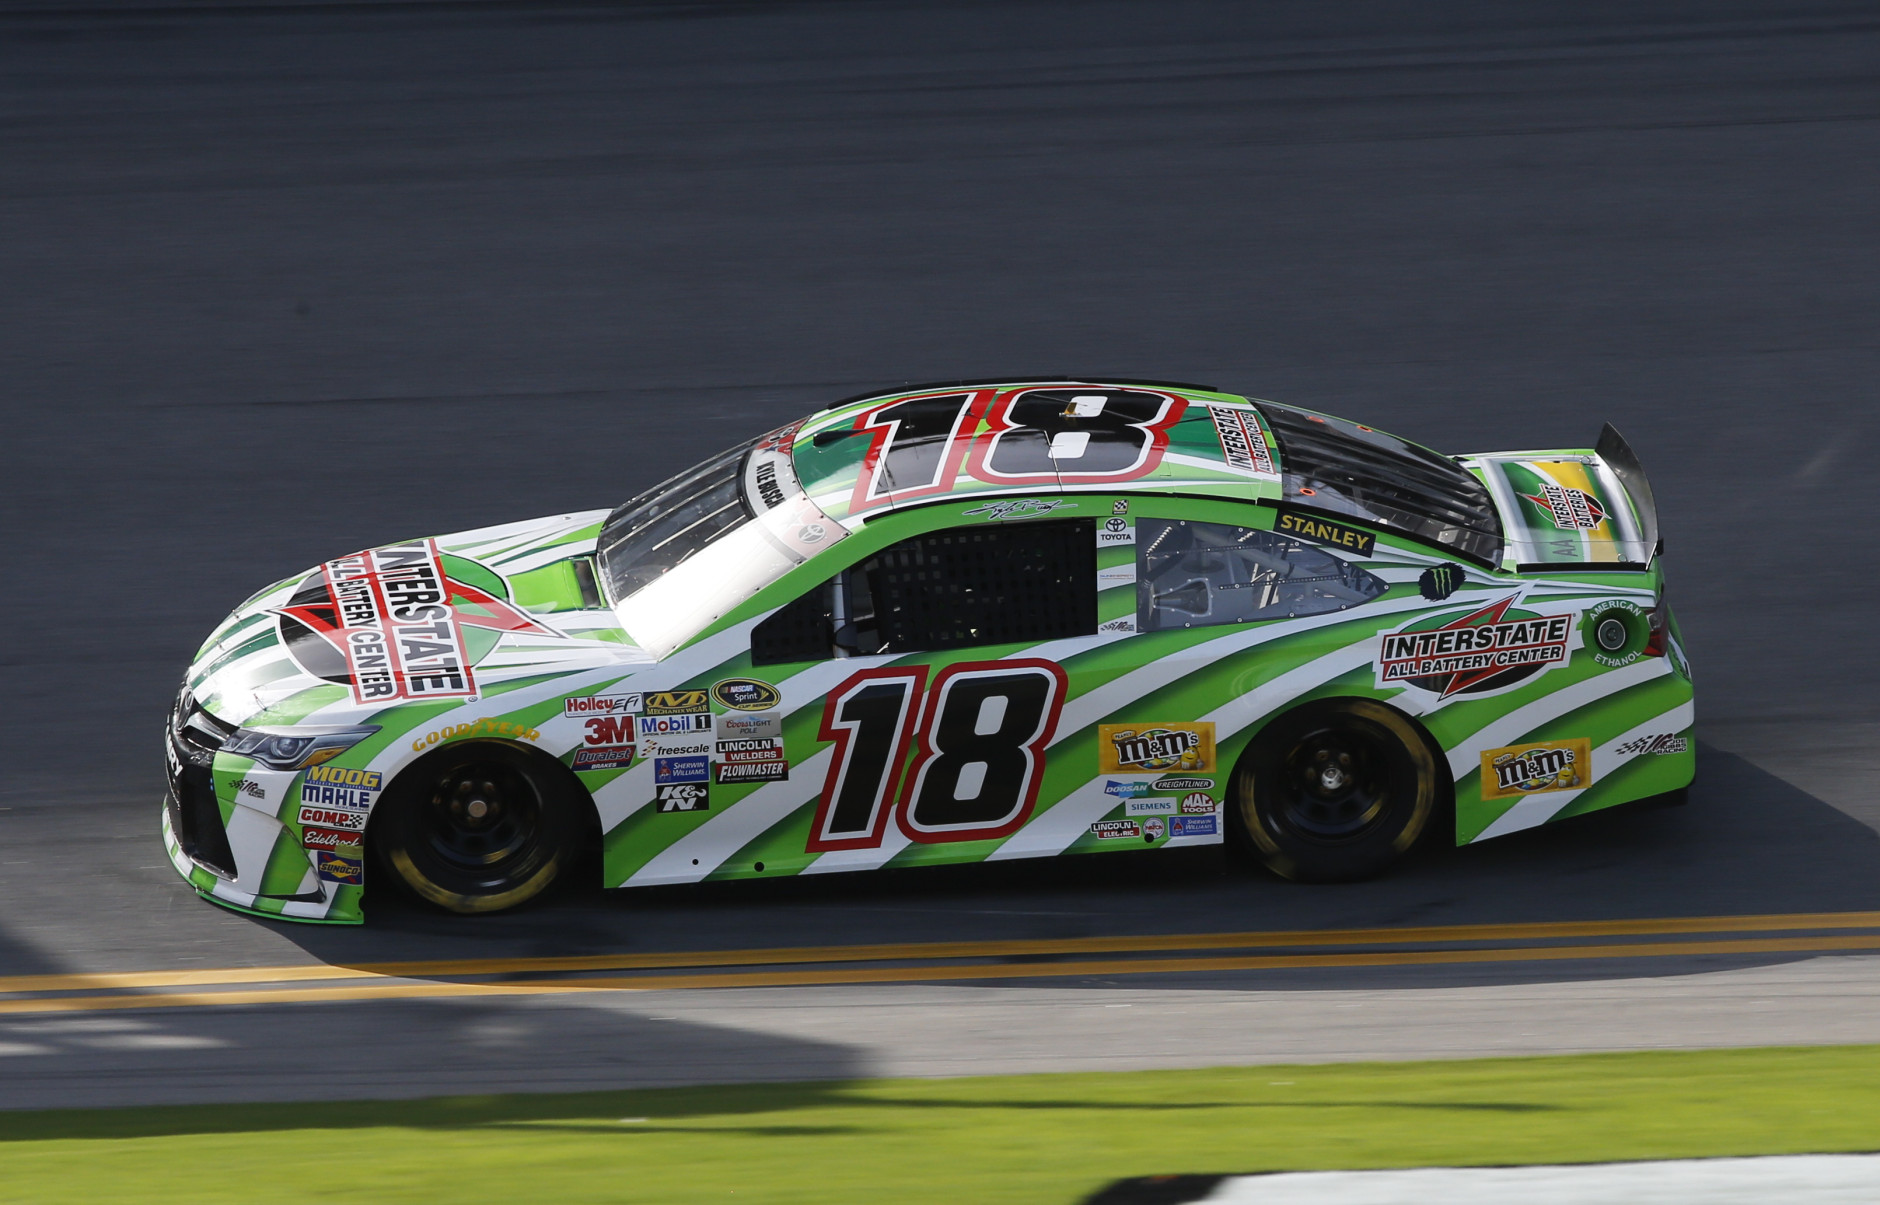 Nascar Driver Kyle Busch Wants Grass Removed From Tracks Wtop